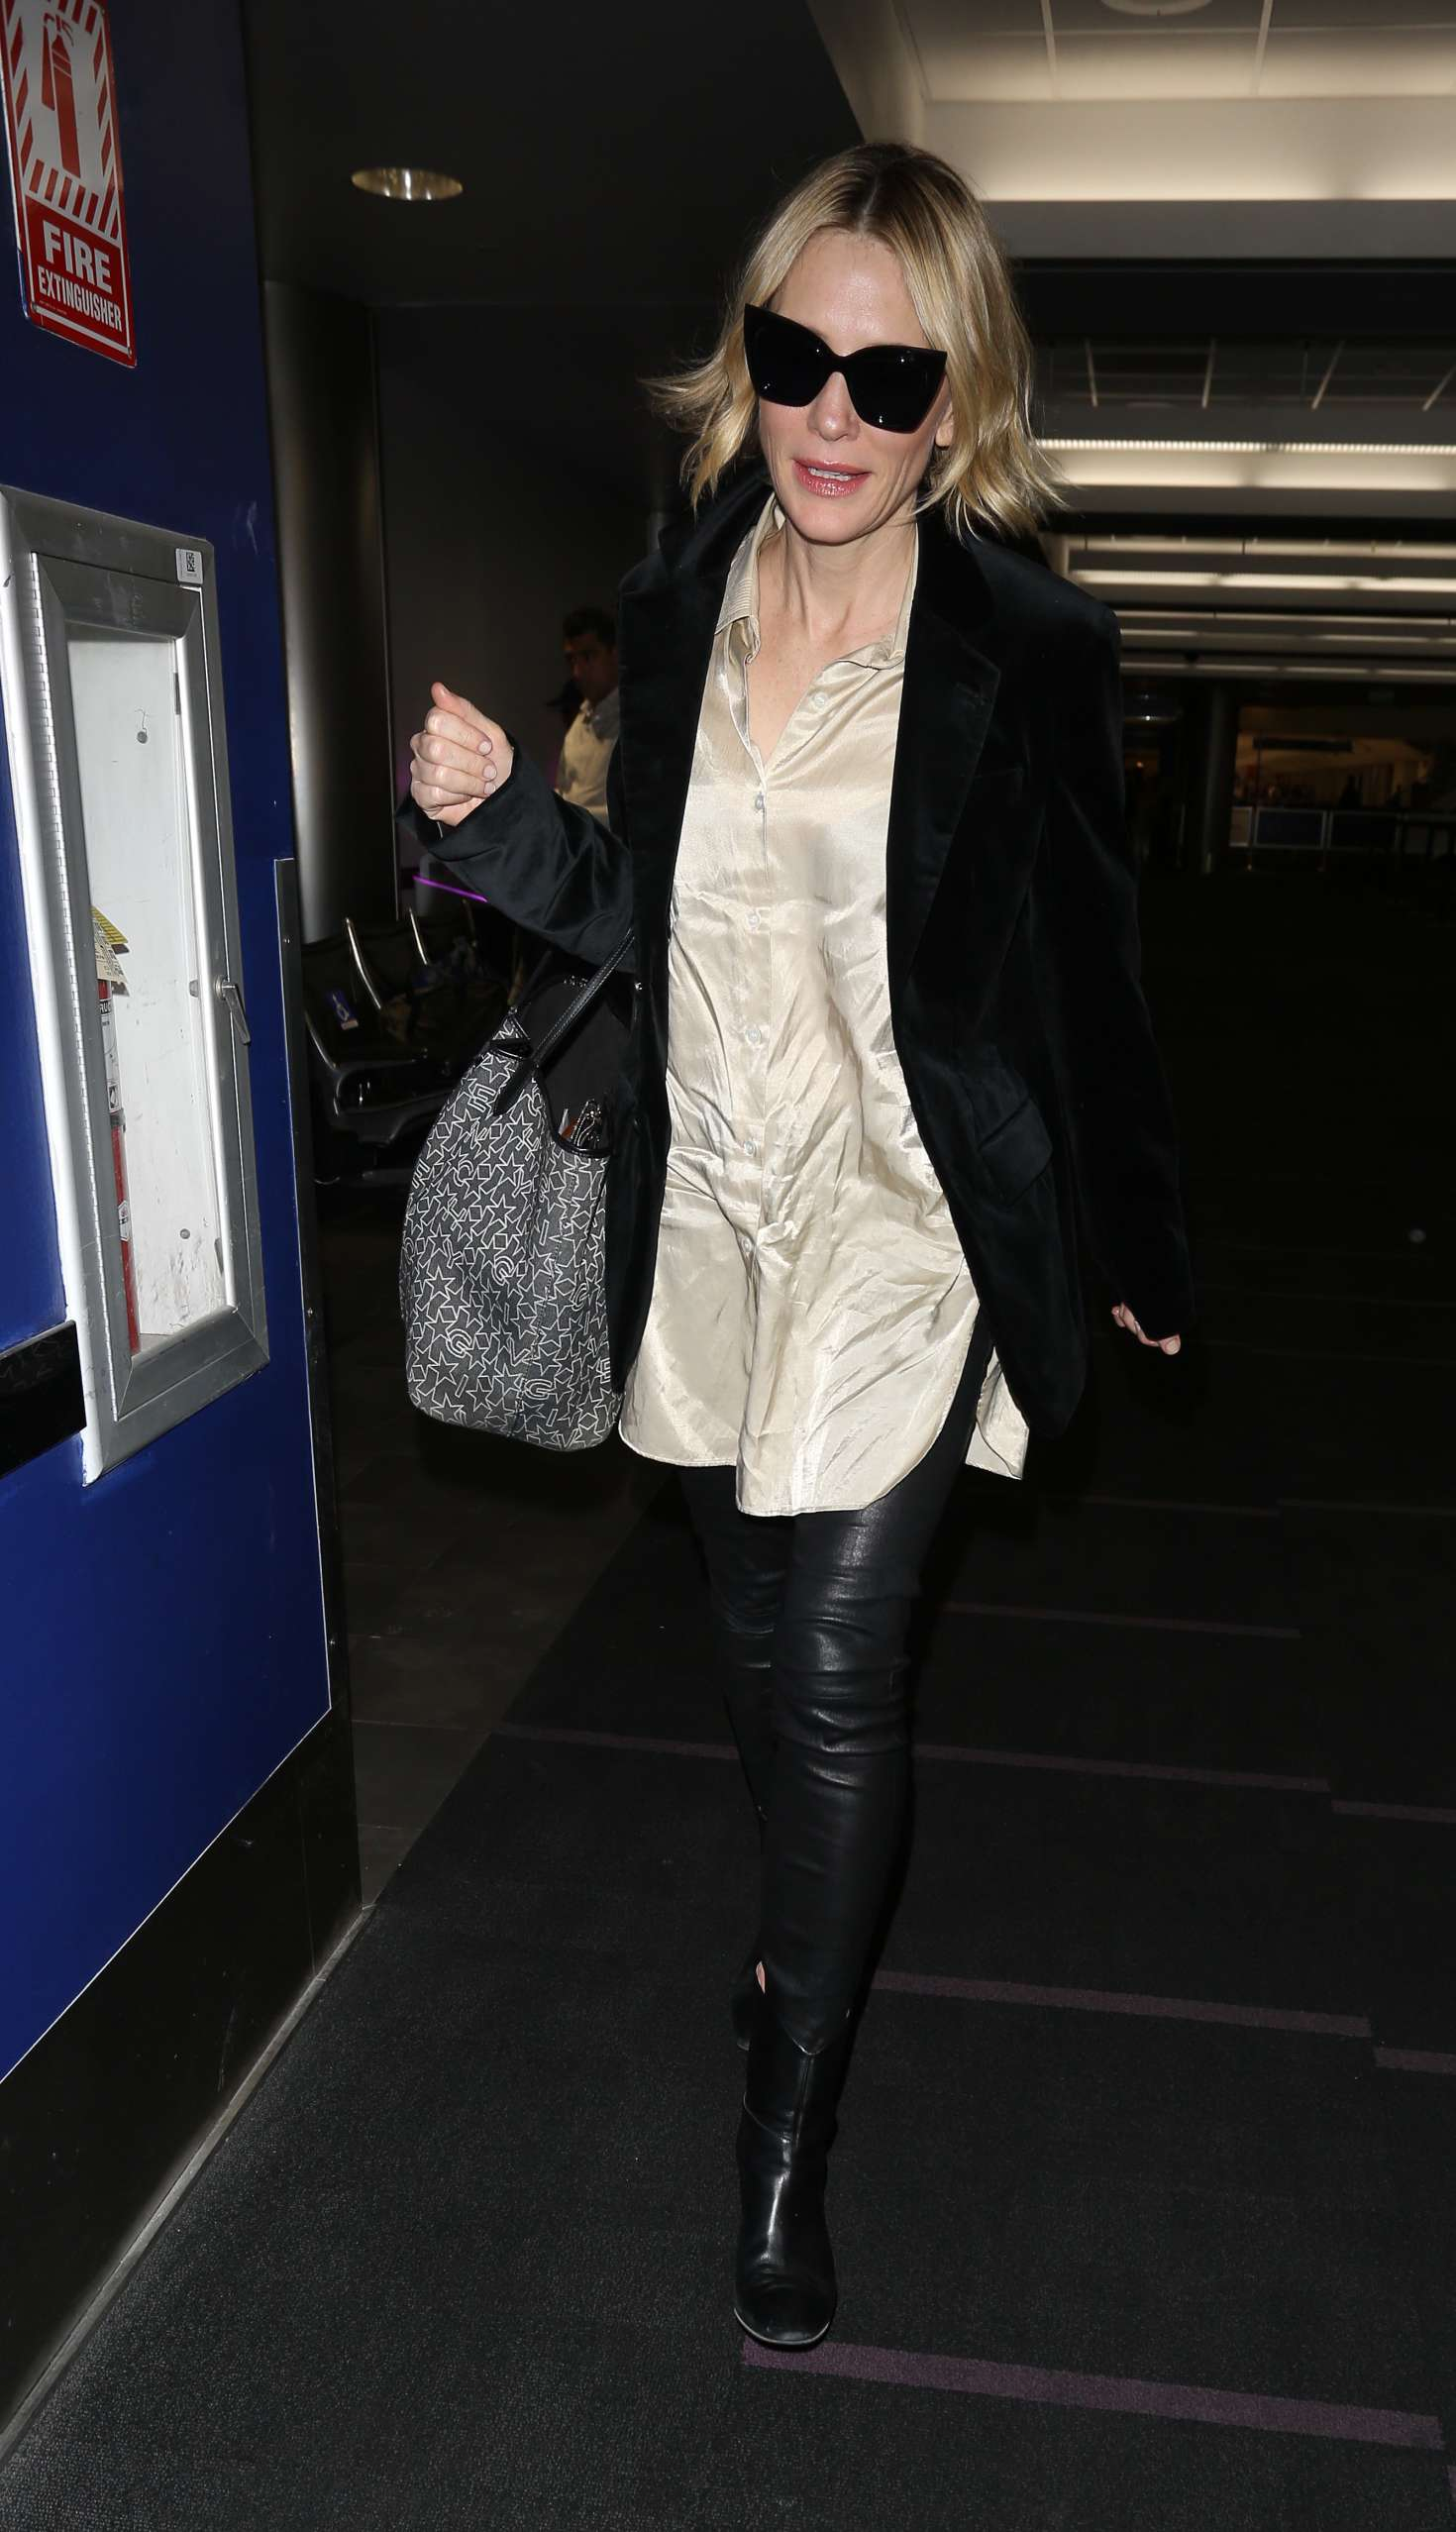 Cate Blanchett 2017 : Cate Blanchett at Los Angeles International Airport -11